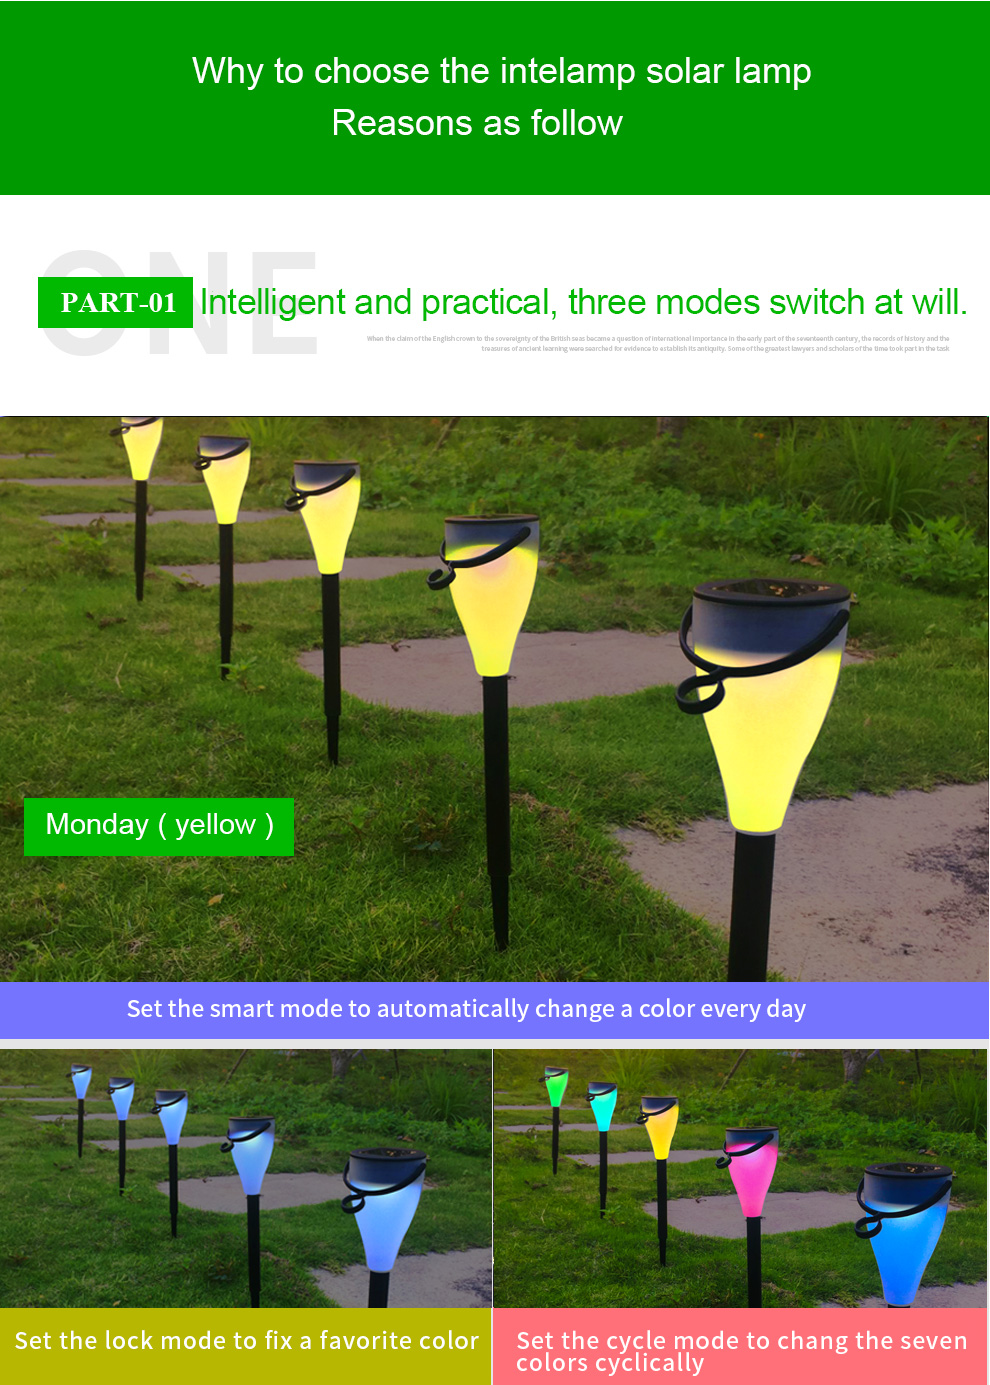 Romantic air lightening solar light Lawn Lamp perfect Decoration Lighting in Garden Pathways & Flower Beds, Yard